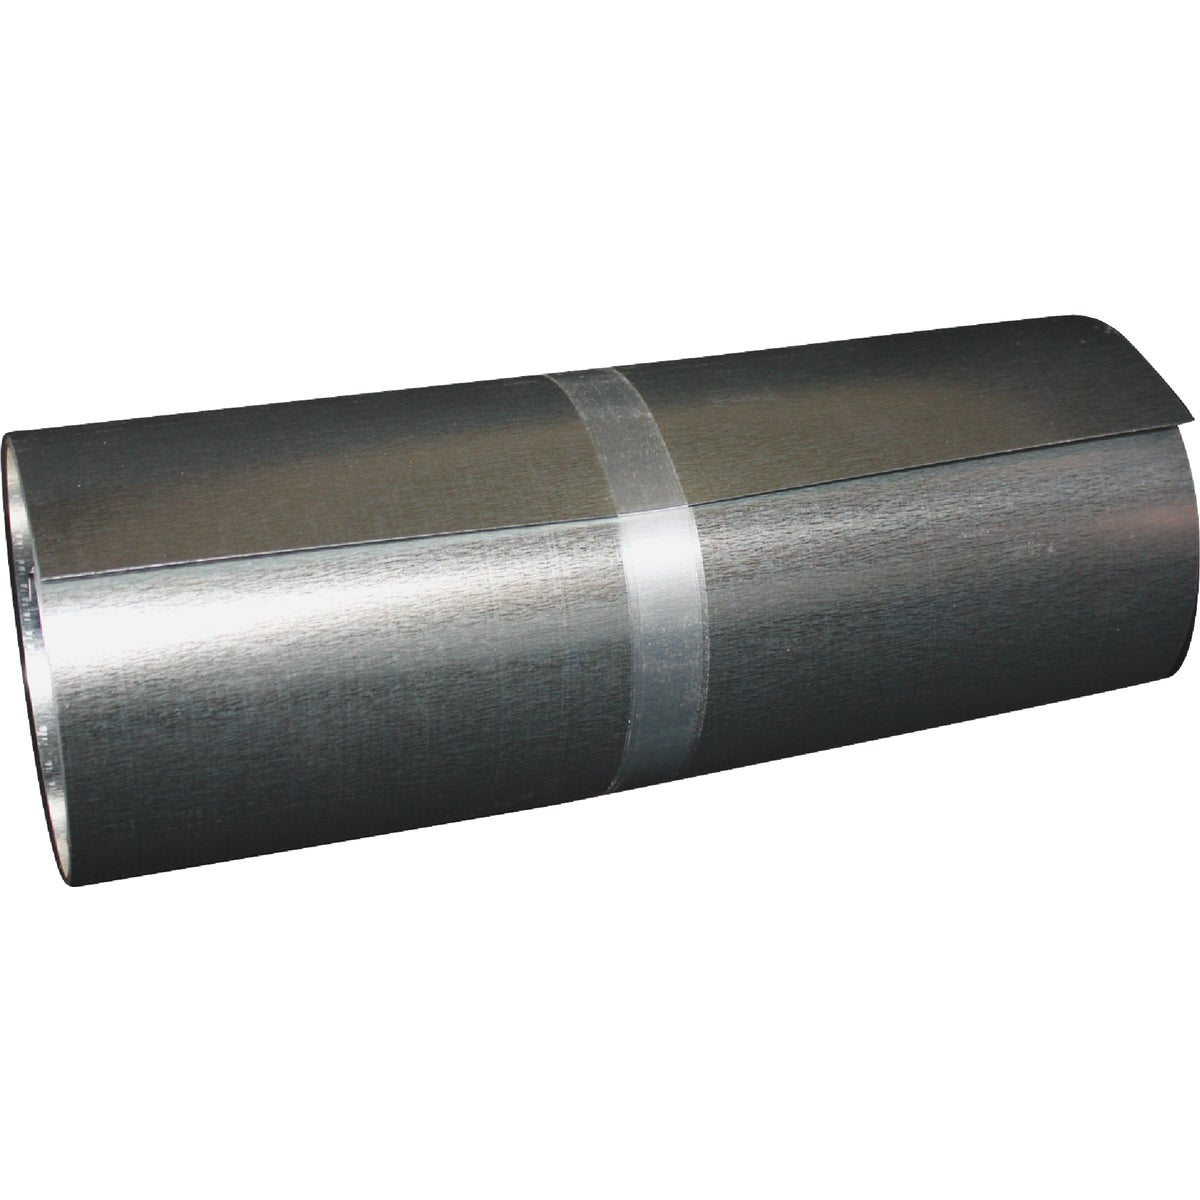 "16""X50' GALV ROLL VALLEY - 30060-GV10 by Klauer Mfg Co"